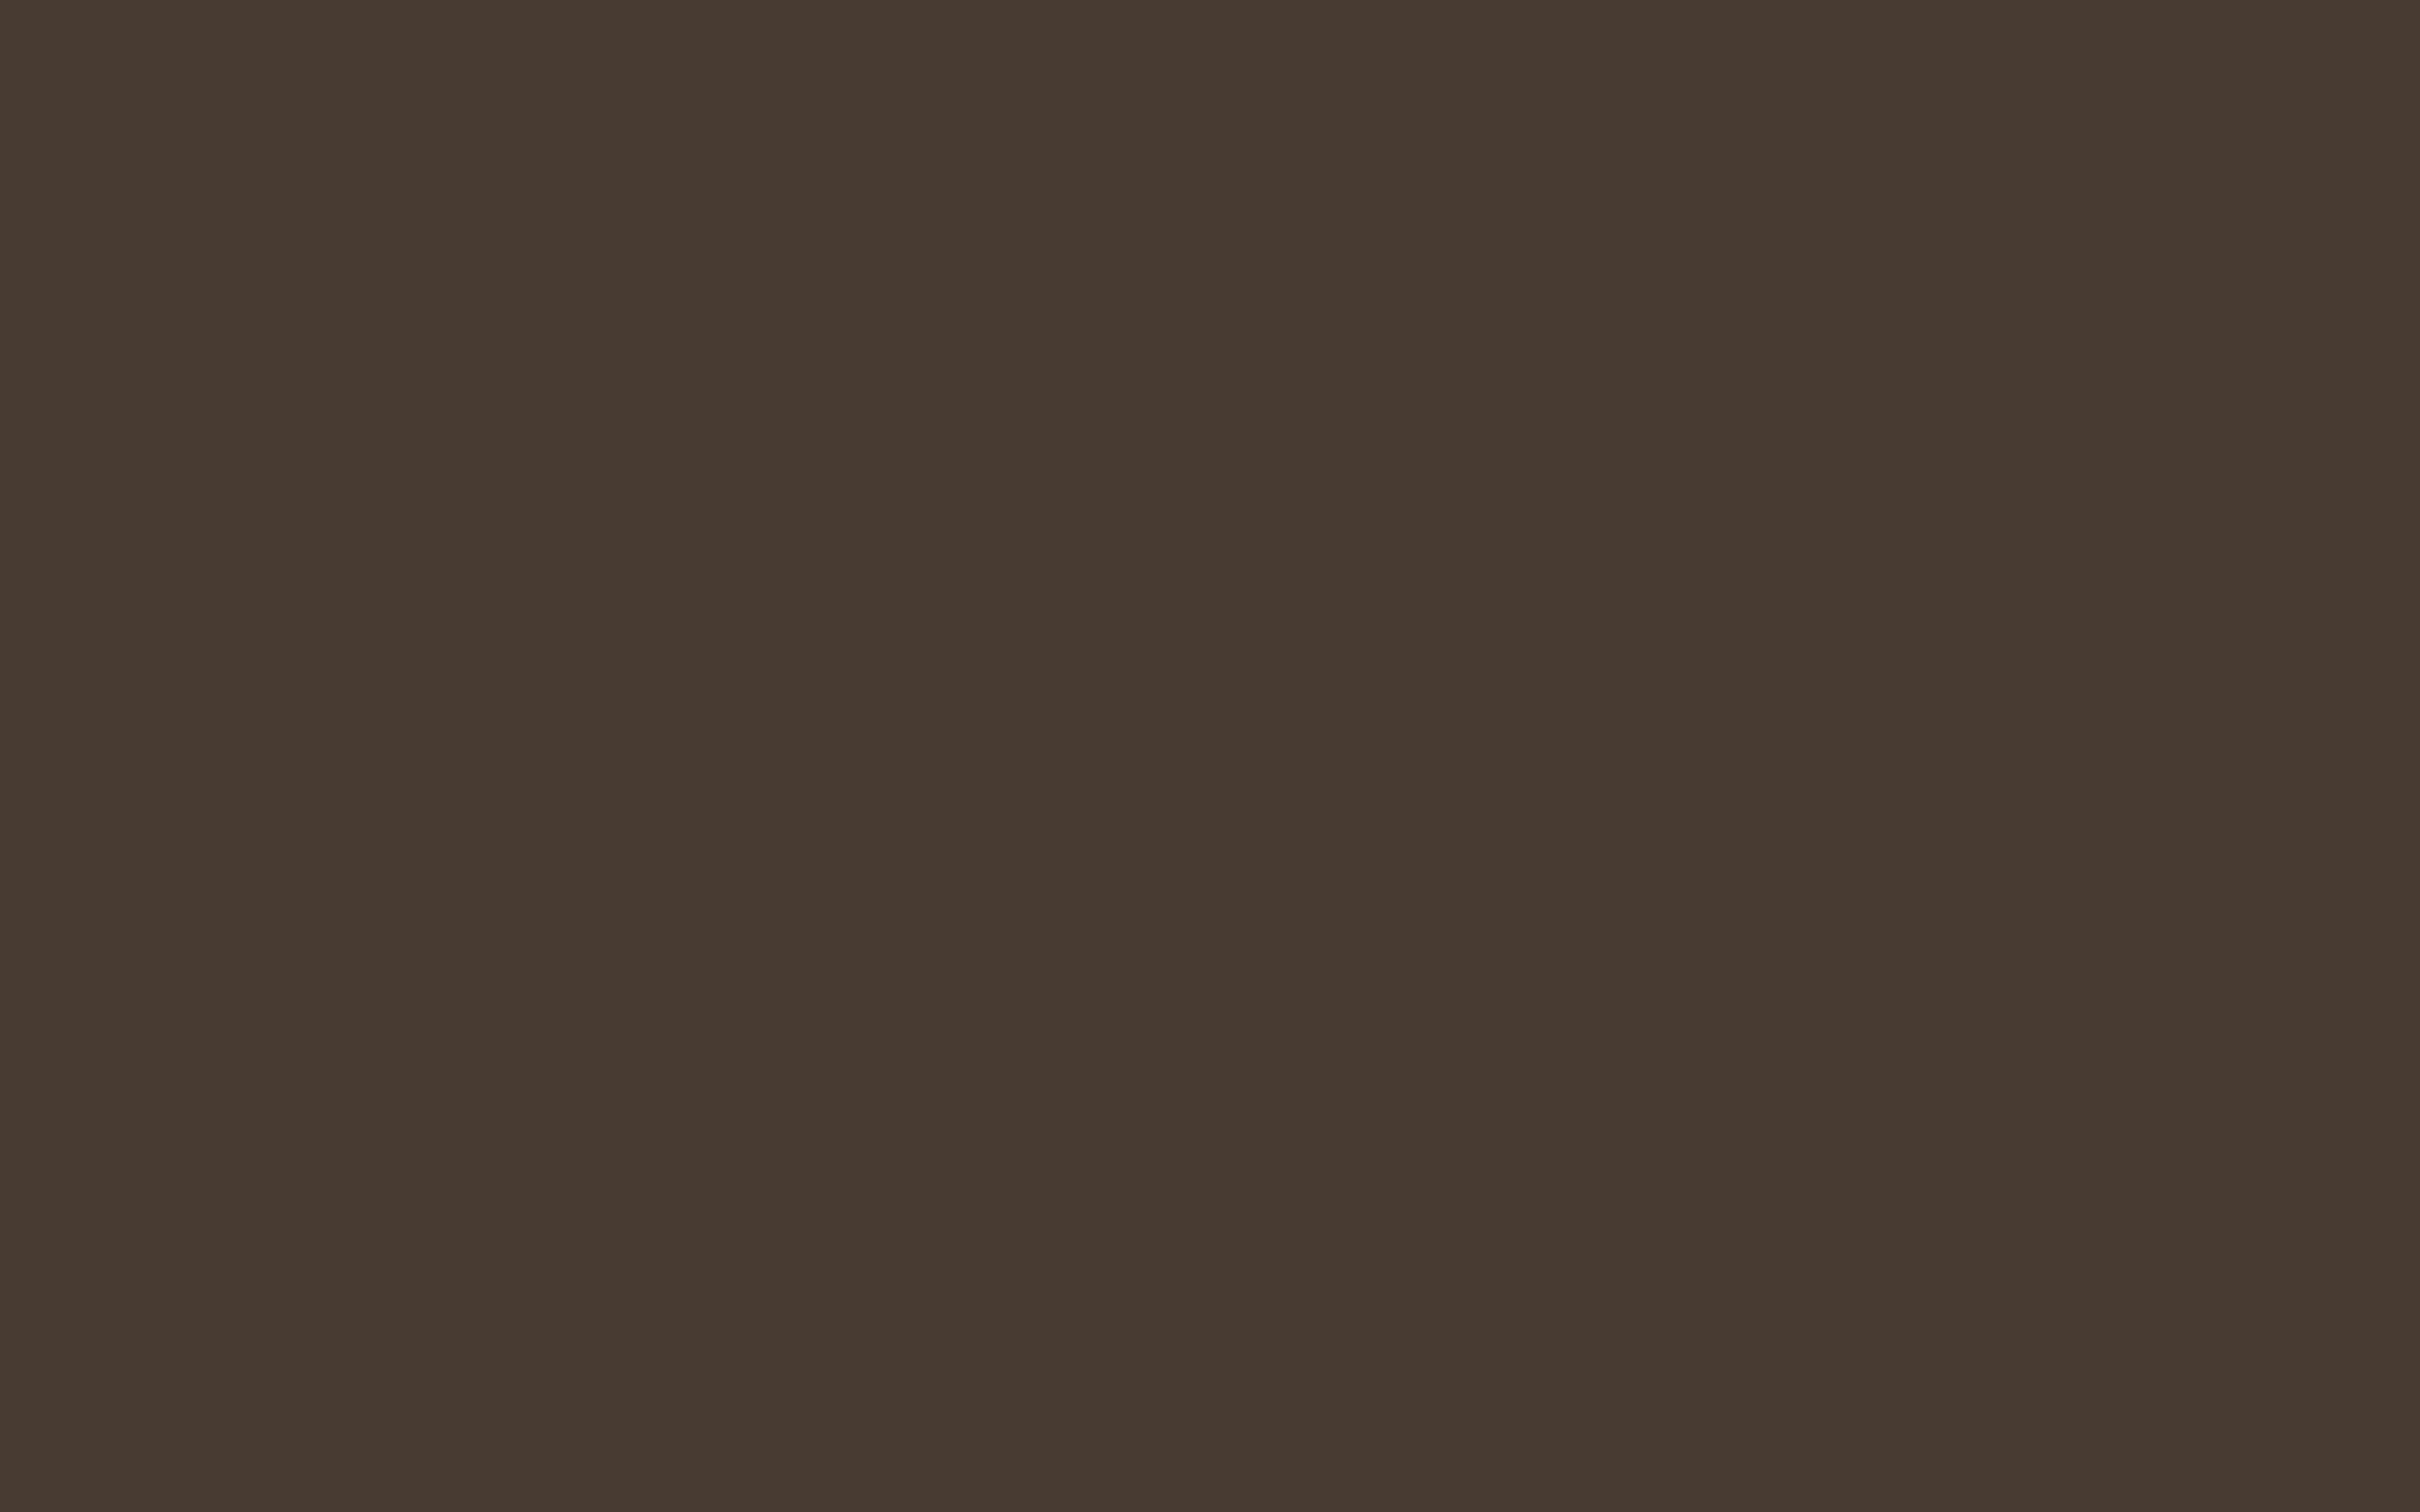 2880x1800 Dark Taupe Solid Color Background